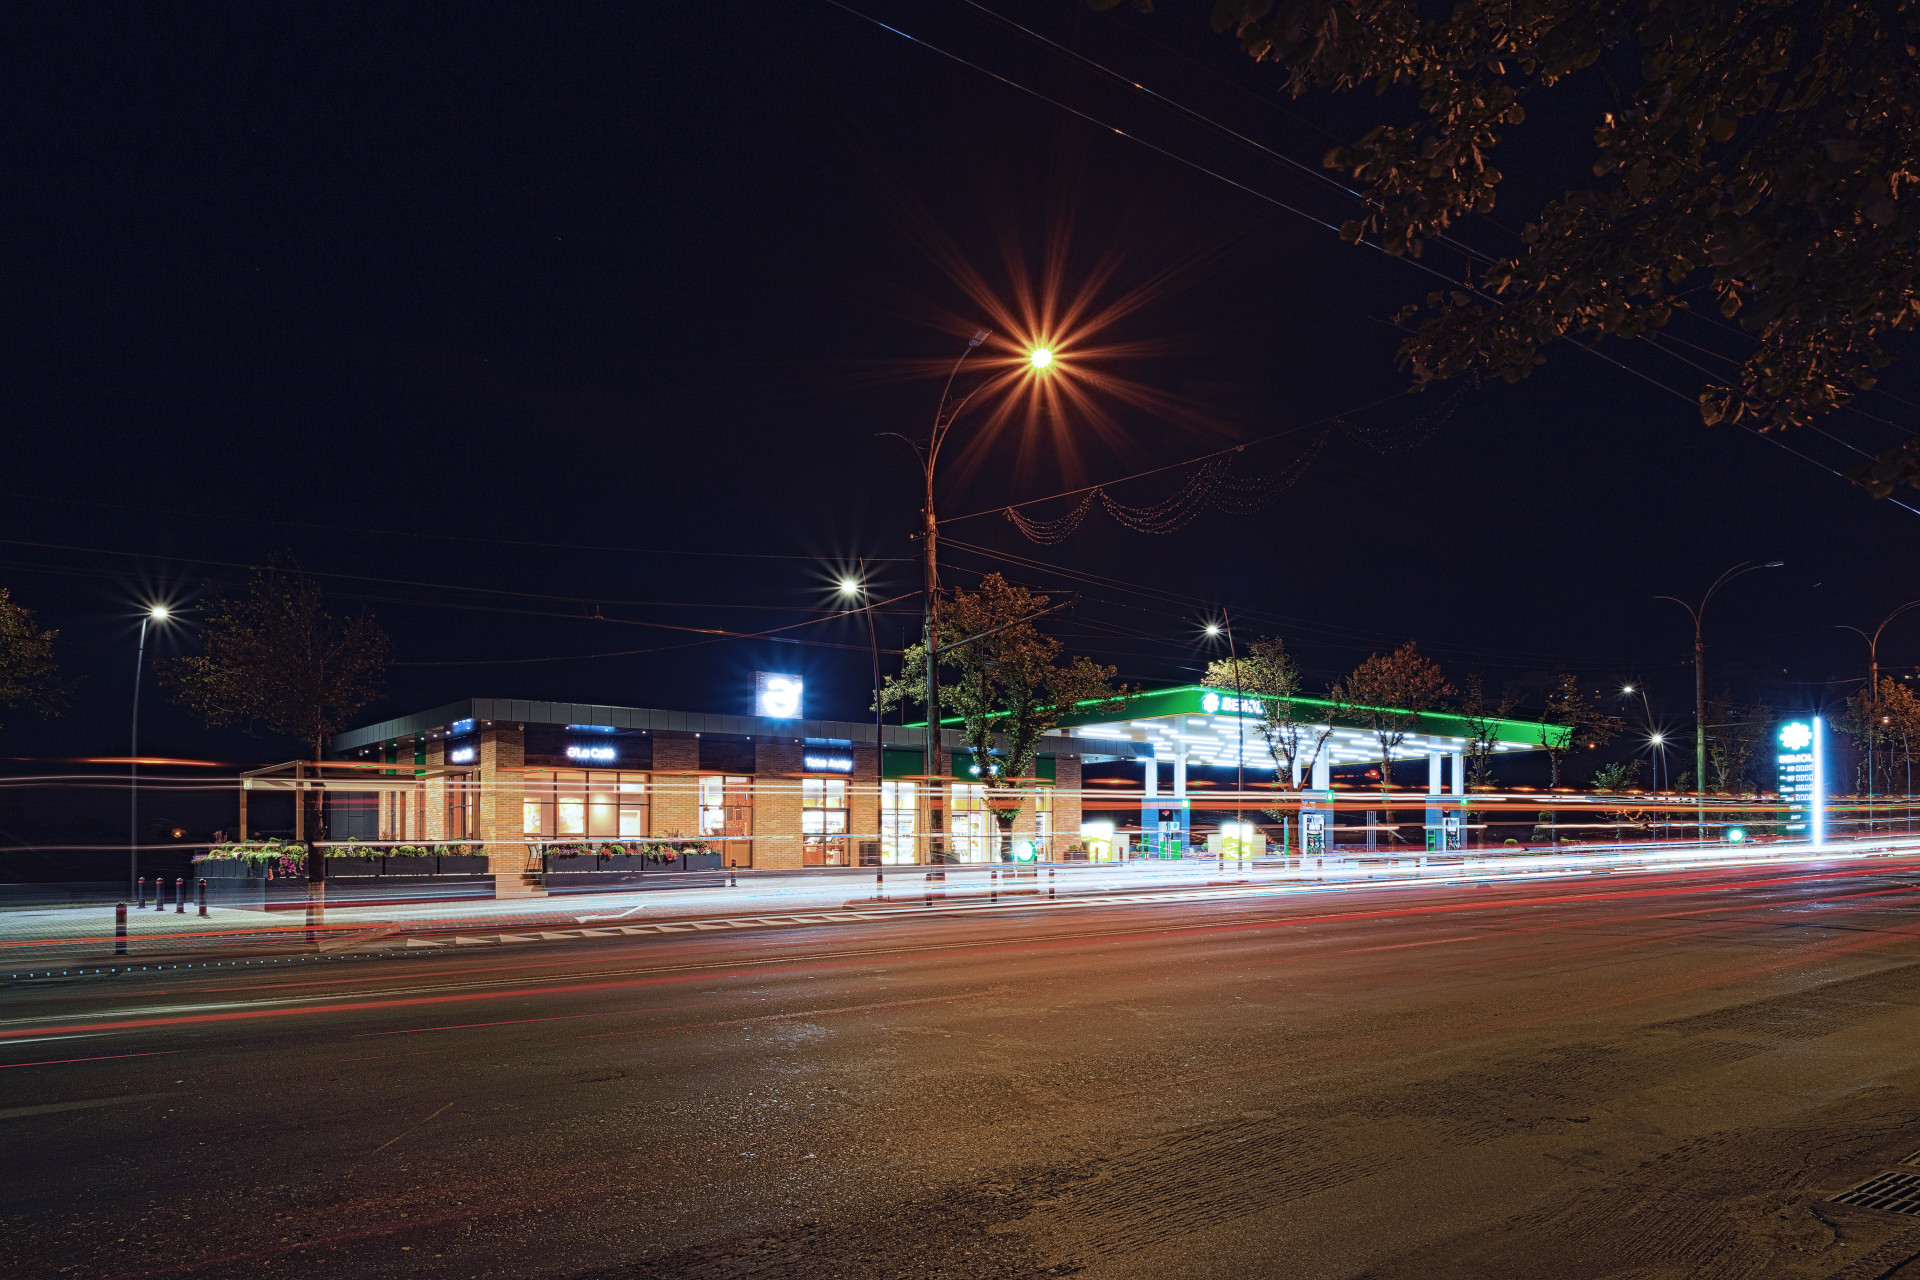 Wisp-A_Gas Station_Night overall